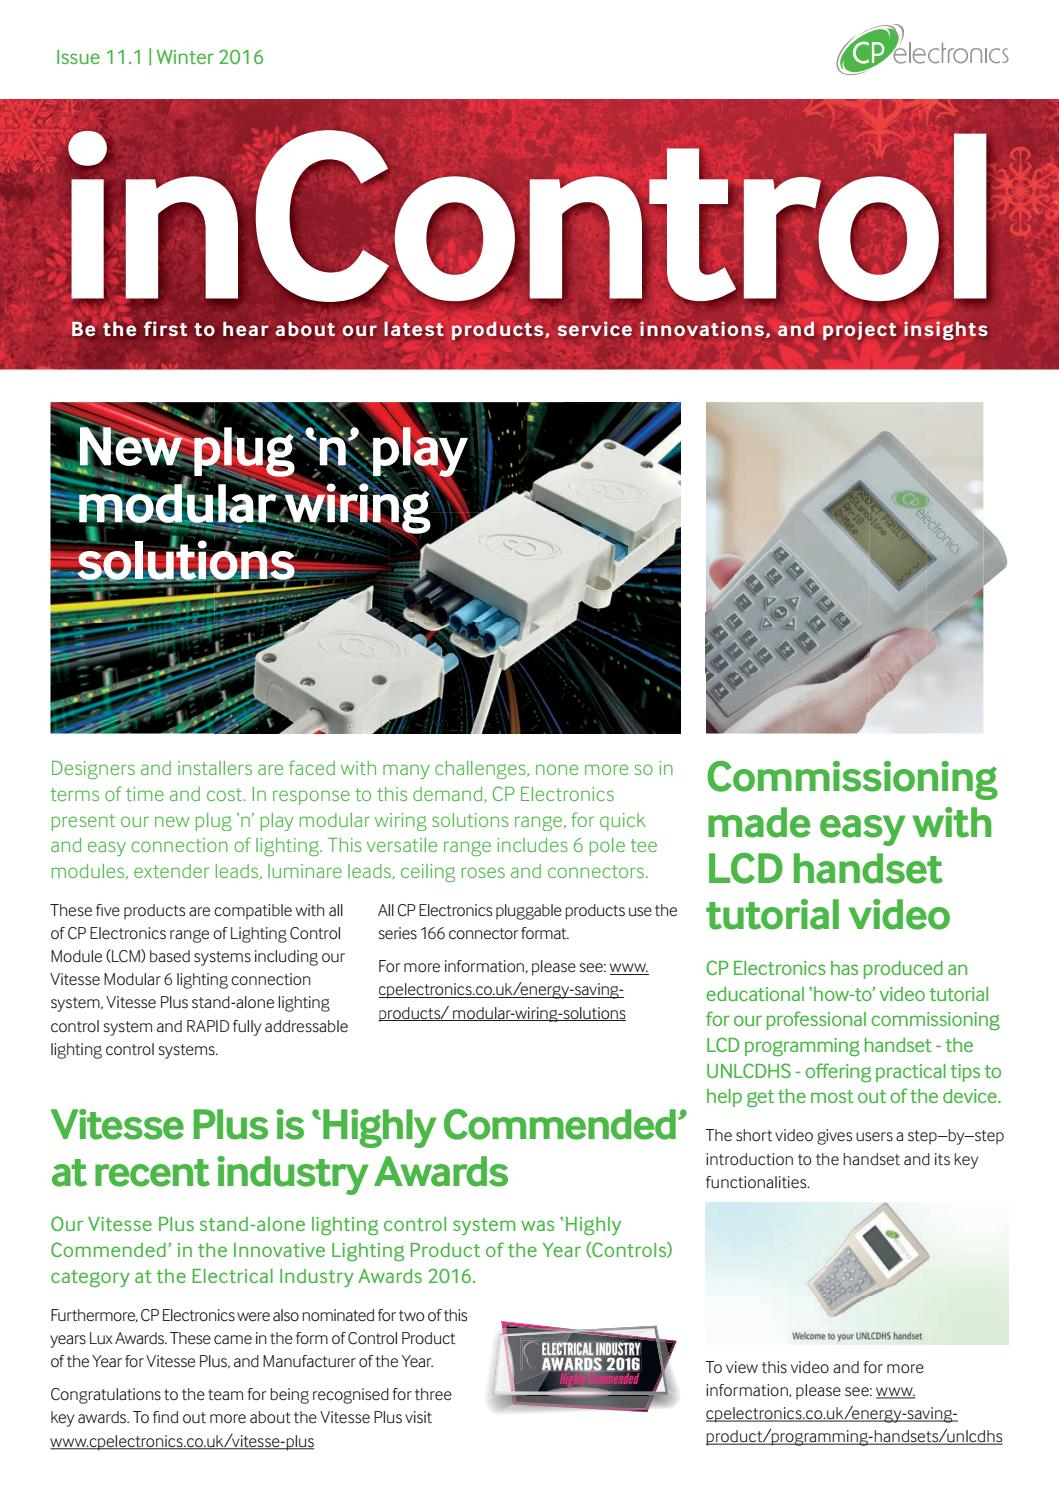 CP Electronics inControl Winter 2016 Newsletter by MicroGraphix ...